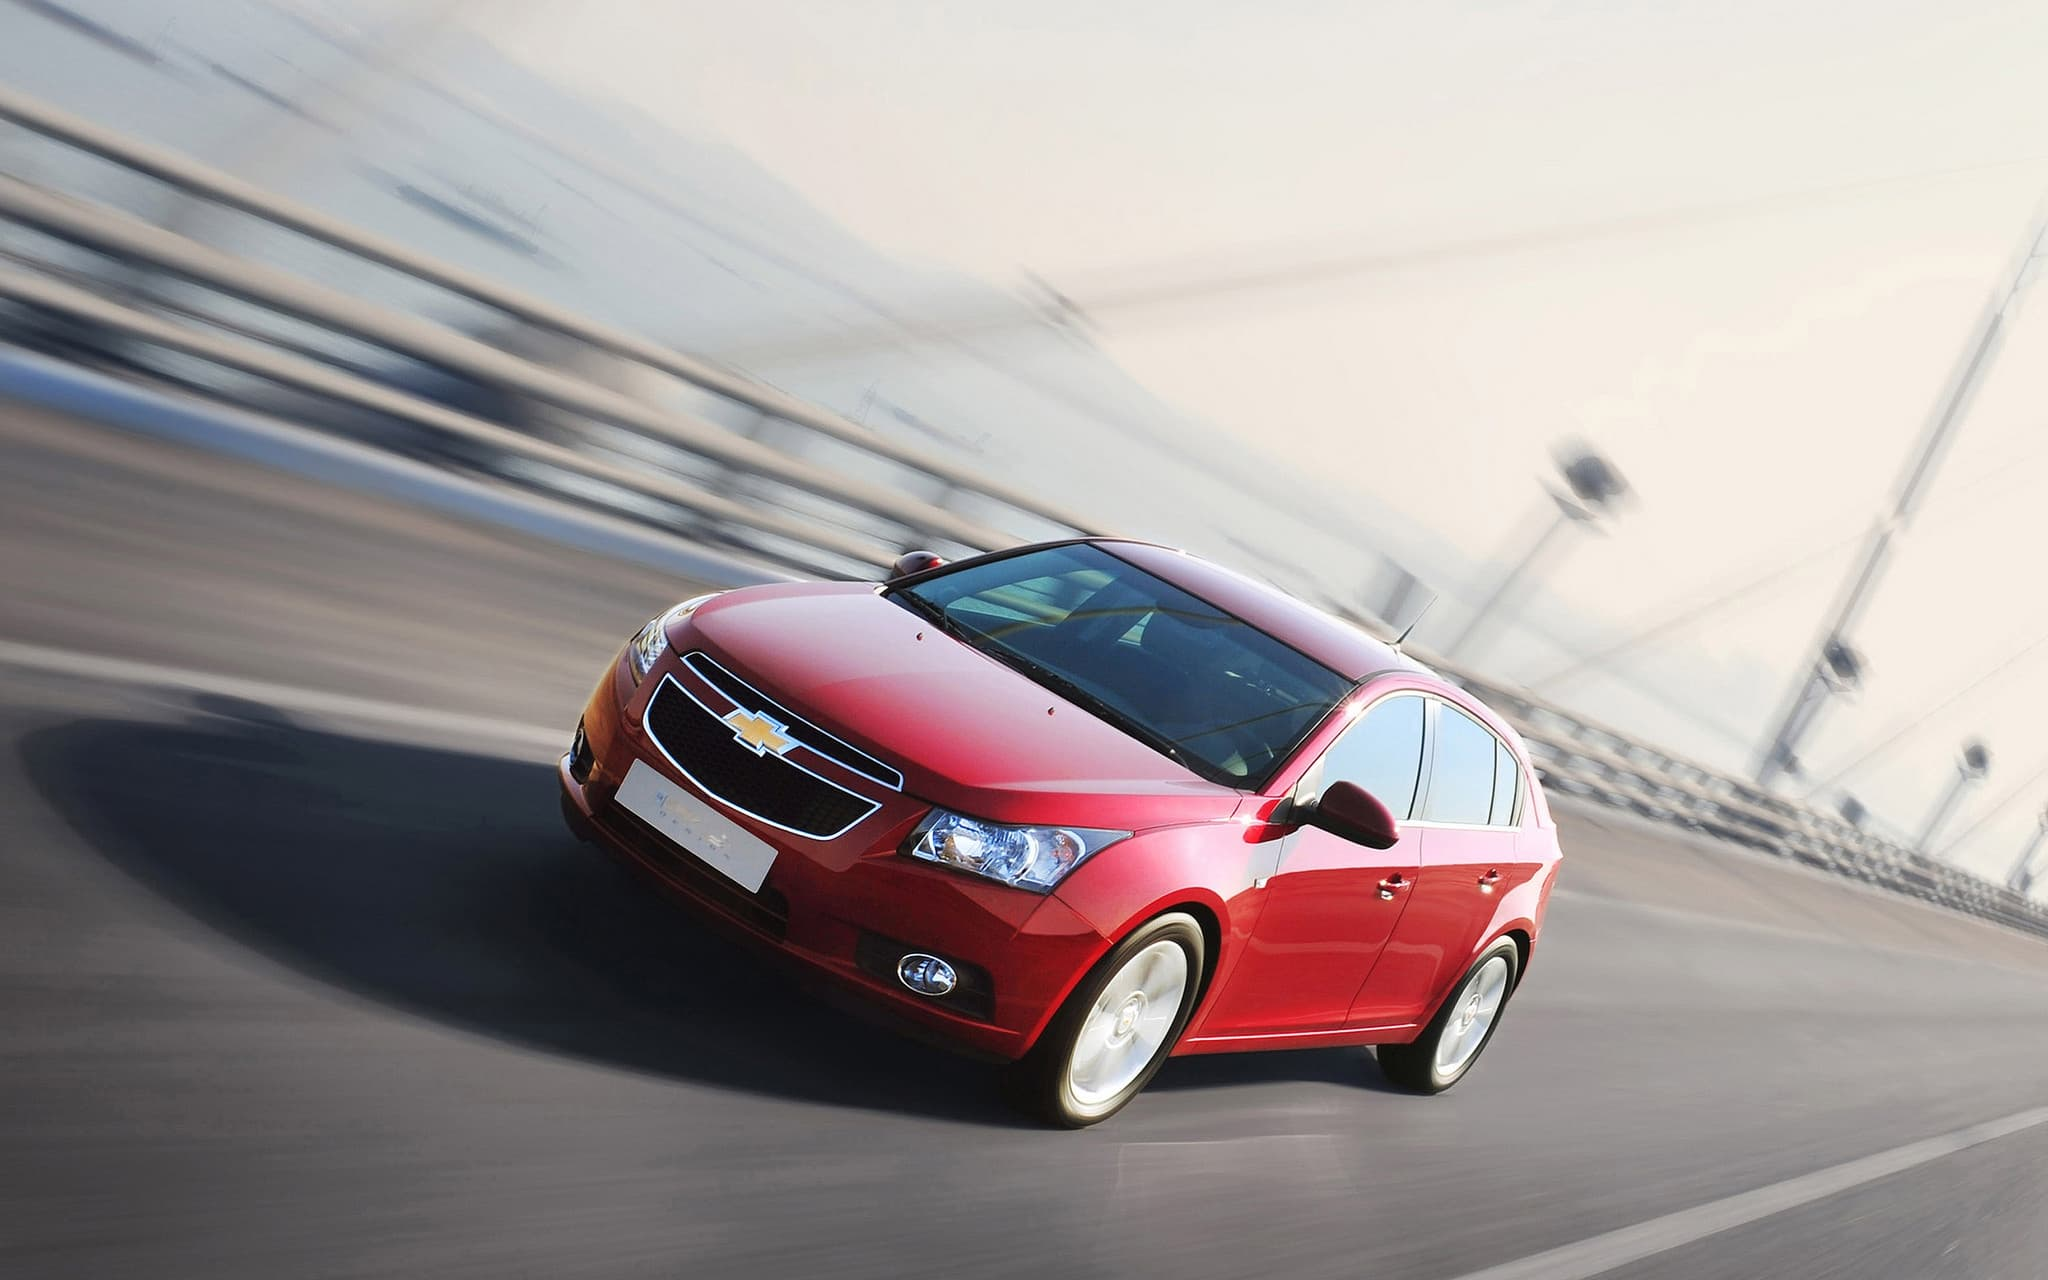 Chevrolet Cruze High Quality wallpaper